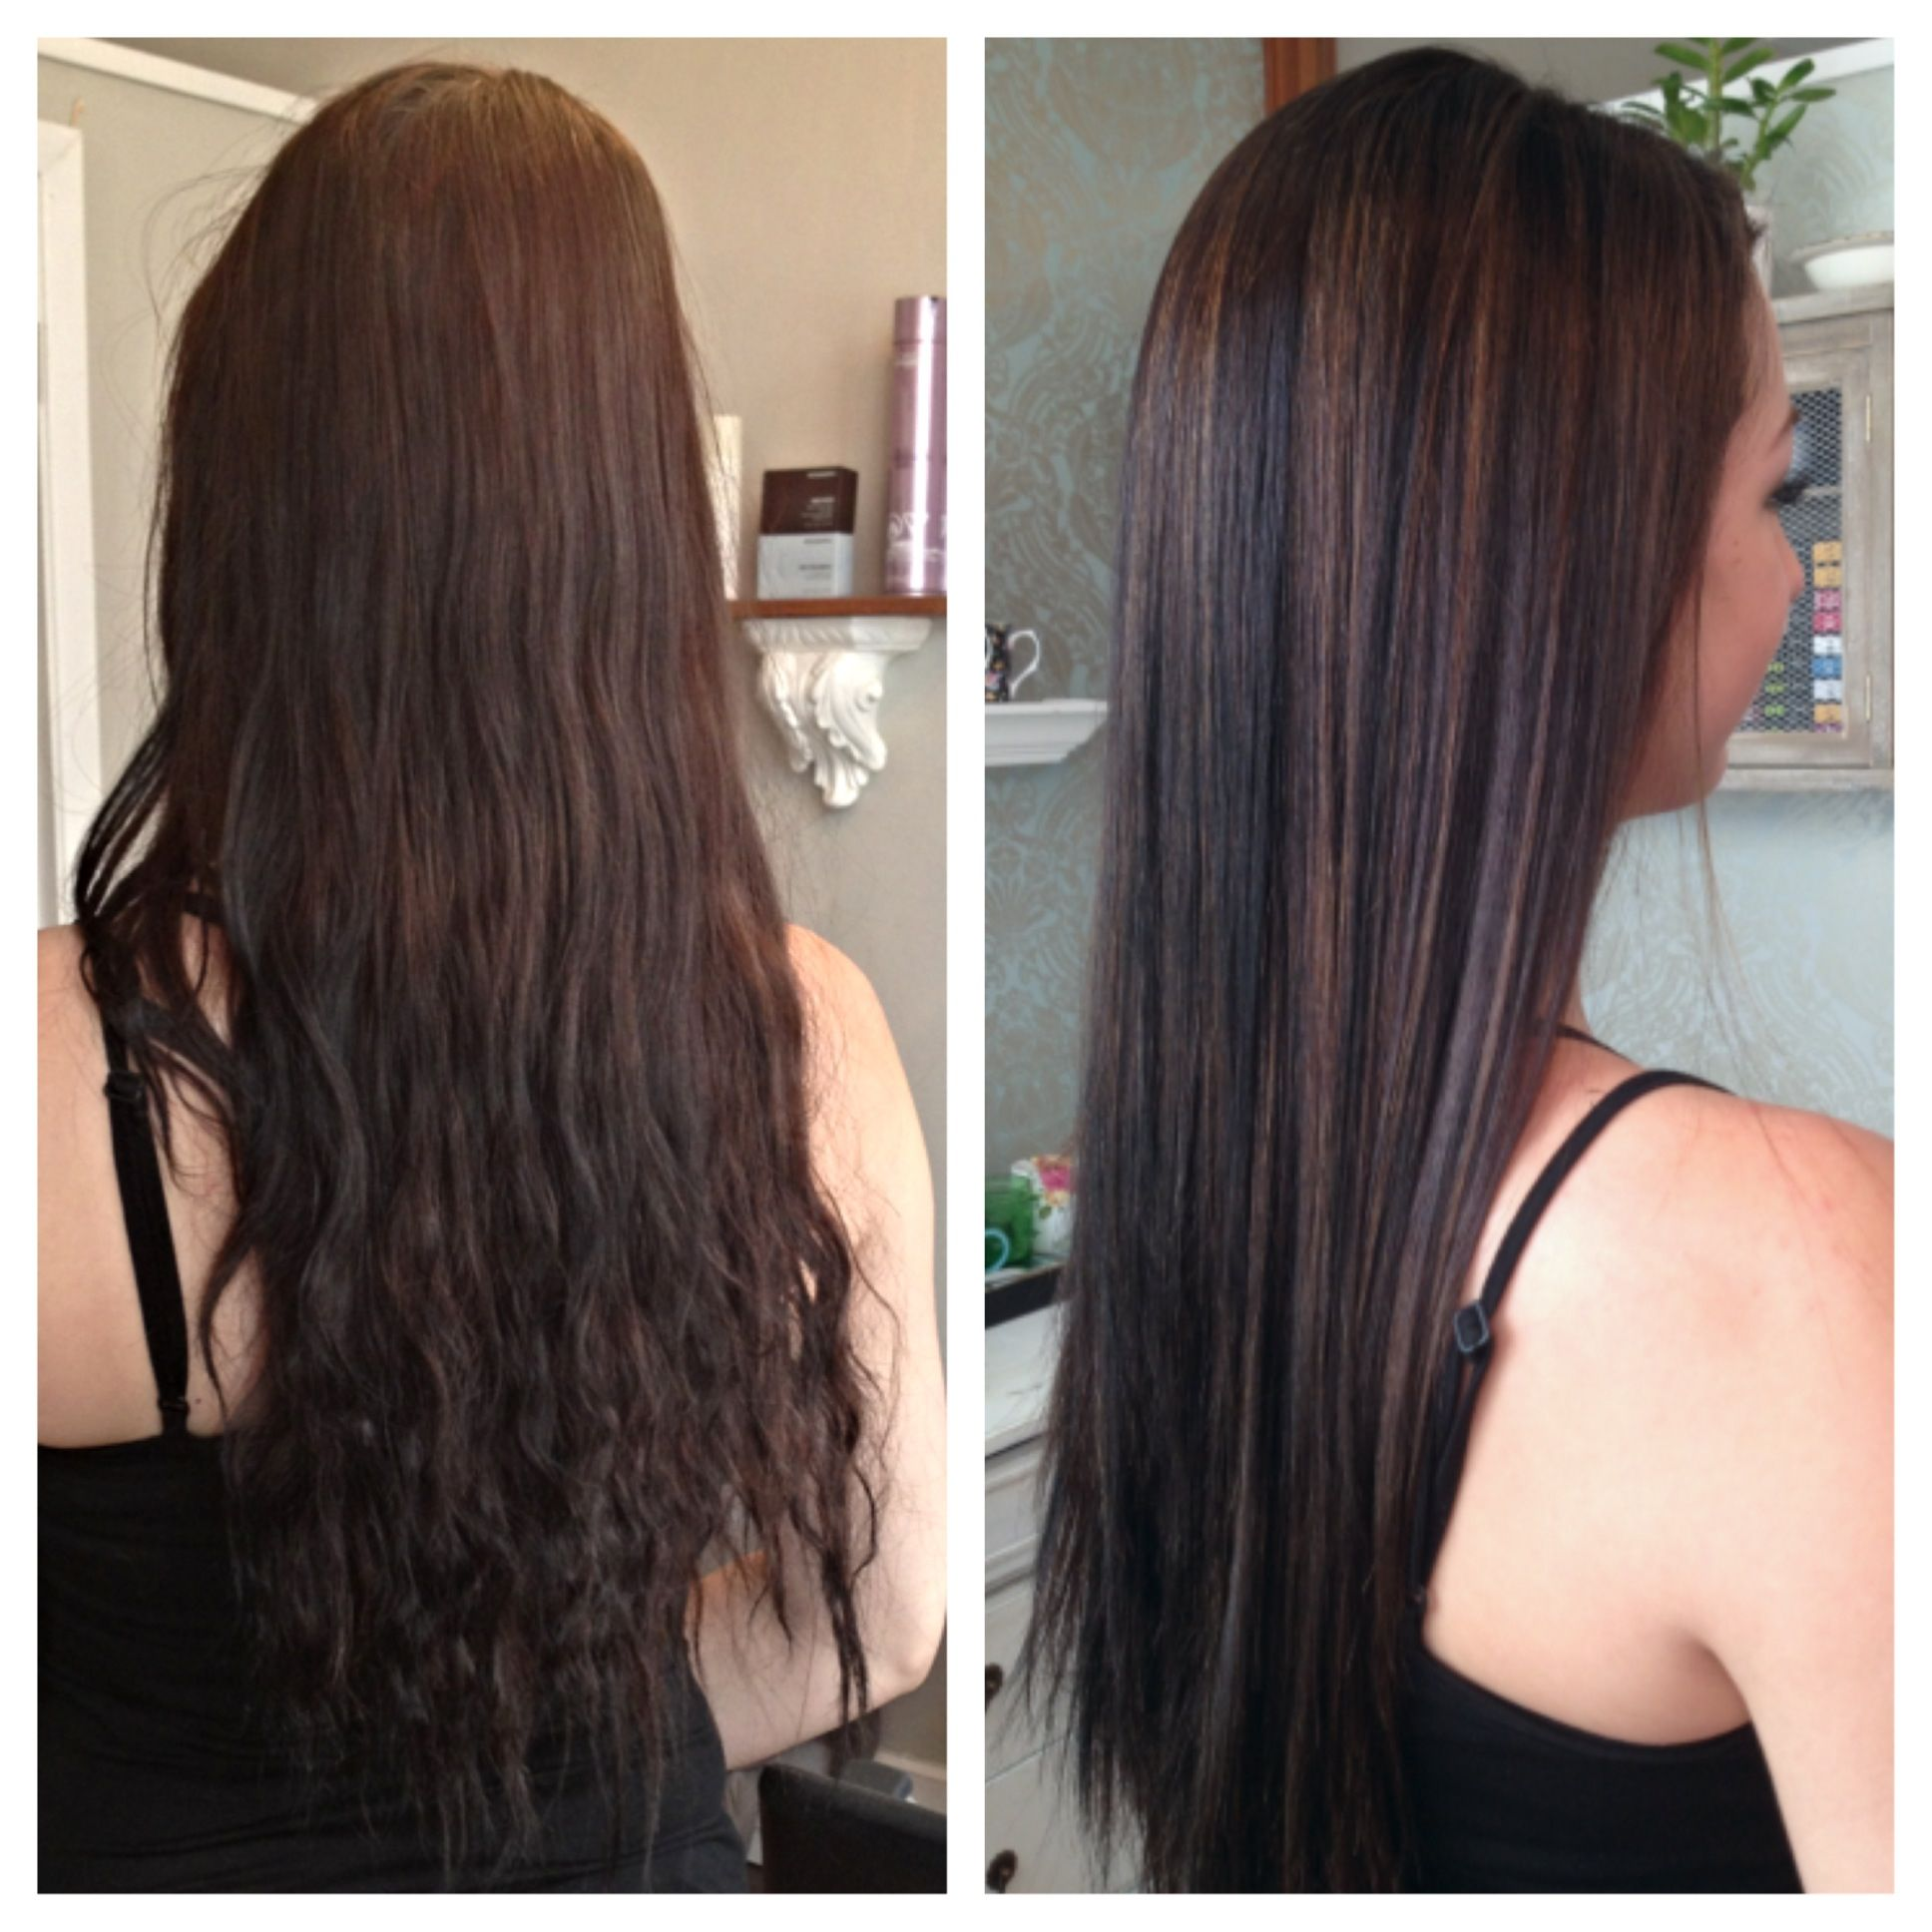 Partial Highlights : Partial highlights before & after. Hair Pinterest